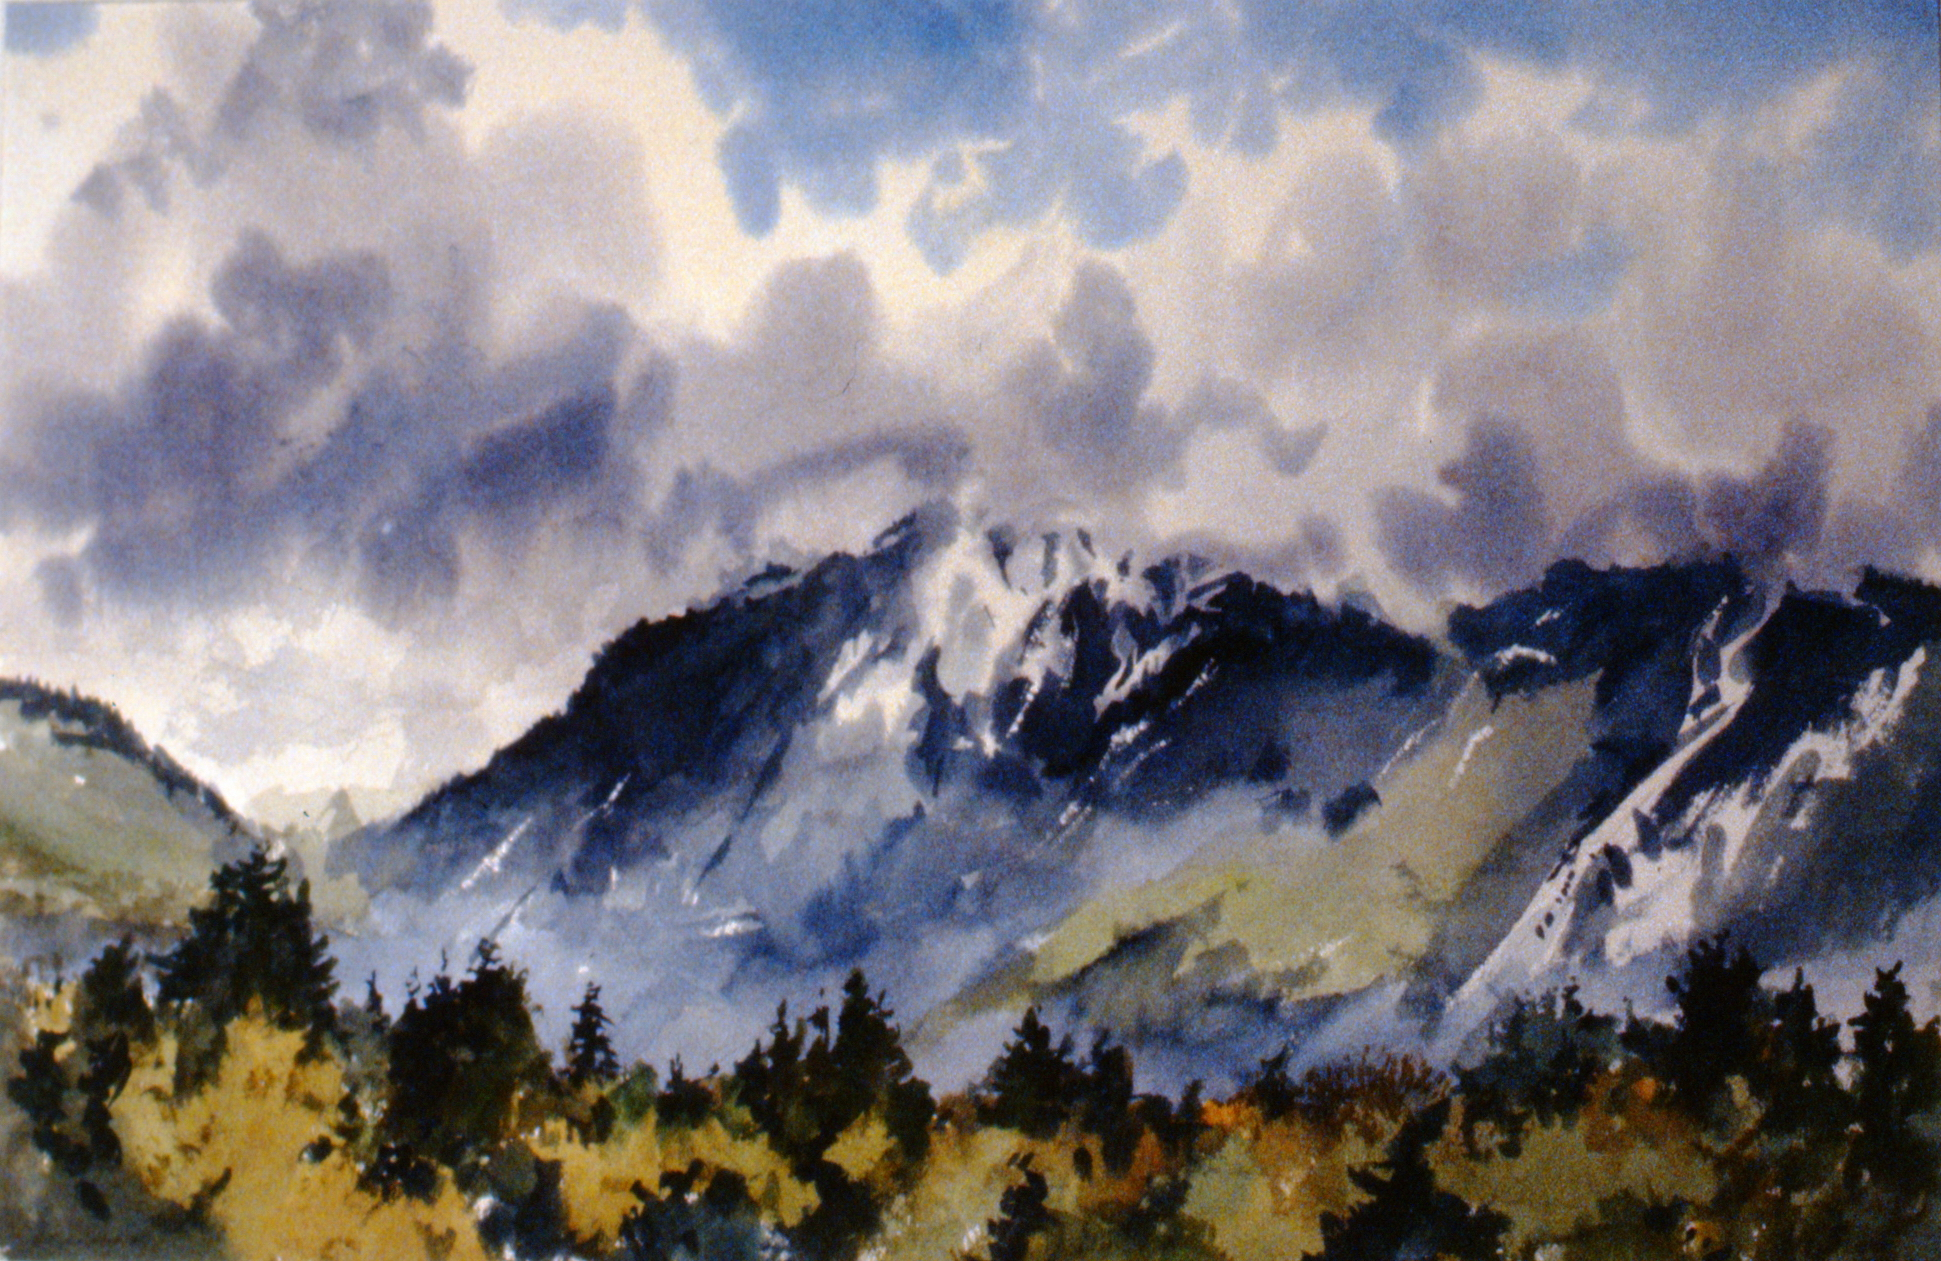 """North Shore Mountains , 1985, Edward Pulford, watercolour 13 1/2"""" x 20 1/2"""", 1991.01.01. Gift of the artist."""